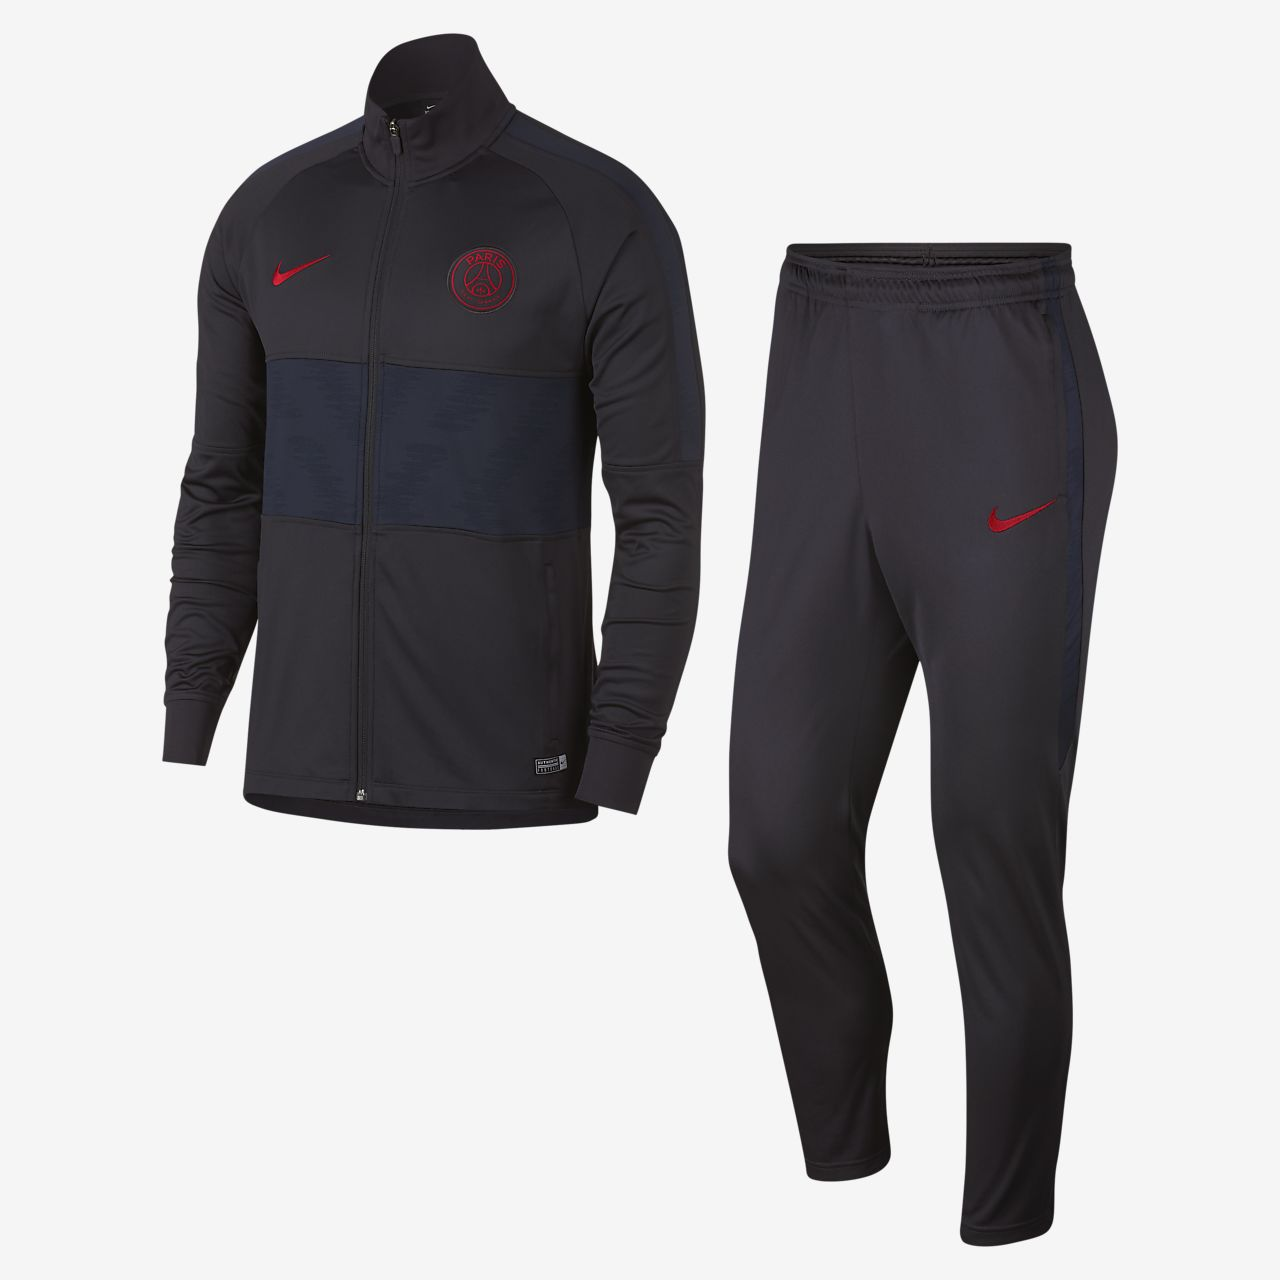 Nike Dri-FIT Paris Saint-Germain Strike fotballtracksuit til herre